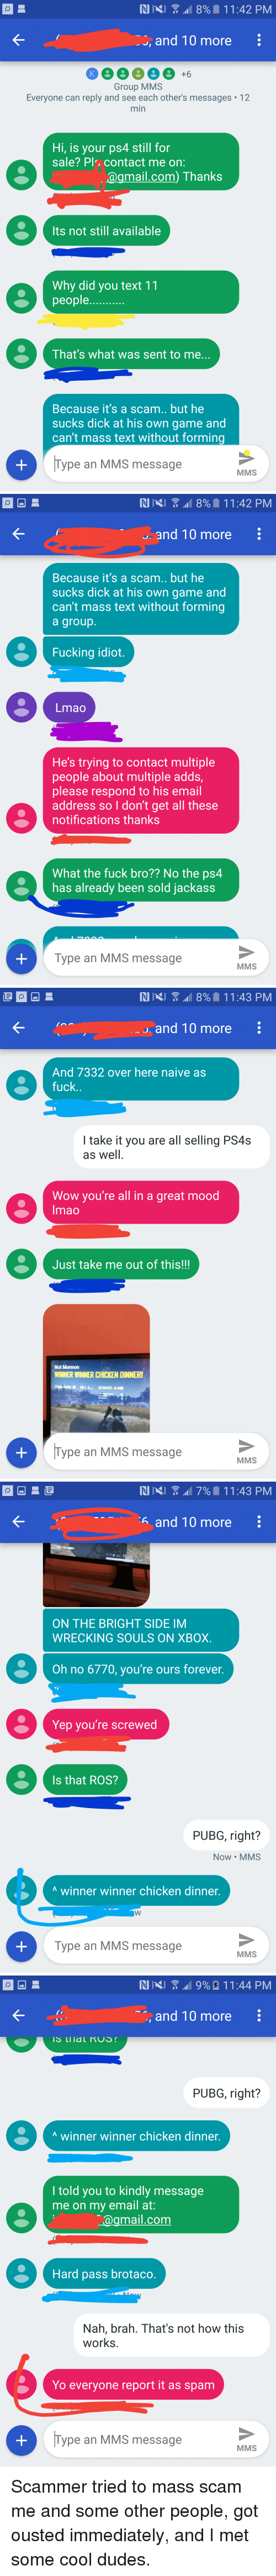 Not How This Works: , and T0 more  Group MMS  Everyone can reply and see each other's messages 12  min  Hi, is your ps4 still for  sale? Pl, contact me on:  @gmail.com) Thanks  Its not still available  Why did you text 11  people  That's what was sent to me.  Because it's a scam.. but he  sucks dick at his own game and  can't mass text without forming  Type an MMS message  MMS   . and 10 more  Because it's a scam.. but he  sucks dick at his own game and  can't mass text without forming  a group  Fucking idiot.  Lmao  He's trying to contact multiple  people about multiple adds  please respond to his email  address so I don't get all these  notifications thanks  What the fuck bro?? No the ps4  has already been sold jackass  Type an MMS message  MMS   . and 10 more  And 7332 over here naive as  fuck  I take it you are all selling PS4s  as well  Wow you're all in a great mood  Imao  Just take me out of this!!!  Not Mormon  WINNER WINNER CHICKEN DINNERI  뾔  Type an MMS message  MMS   6 and 10 more  ON THE BRIGHT SIDE IM  WRECKING SOULS ON XBOX.  Oh no 6770, you're ours forever  Yep you're screwed  Is that ROS?  PUBG, right?  Now MMS  A winner winner chicken dinner.  Type an MMS message  MMS   , and T0 more  PUBG, right?  A winner winner chicken dinner.  l told you to kindly message  me on my email at:  agmail.com  Hard pass brotaco  Nah, brah. That's not how this  works.  Yo everyone report it as spam  Type an MMS message  MMS Scammer tried to mass scam me and some other people, got ousted immediately, and I met some cool dudes.